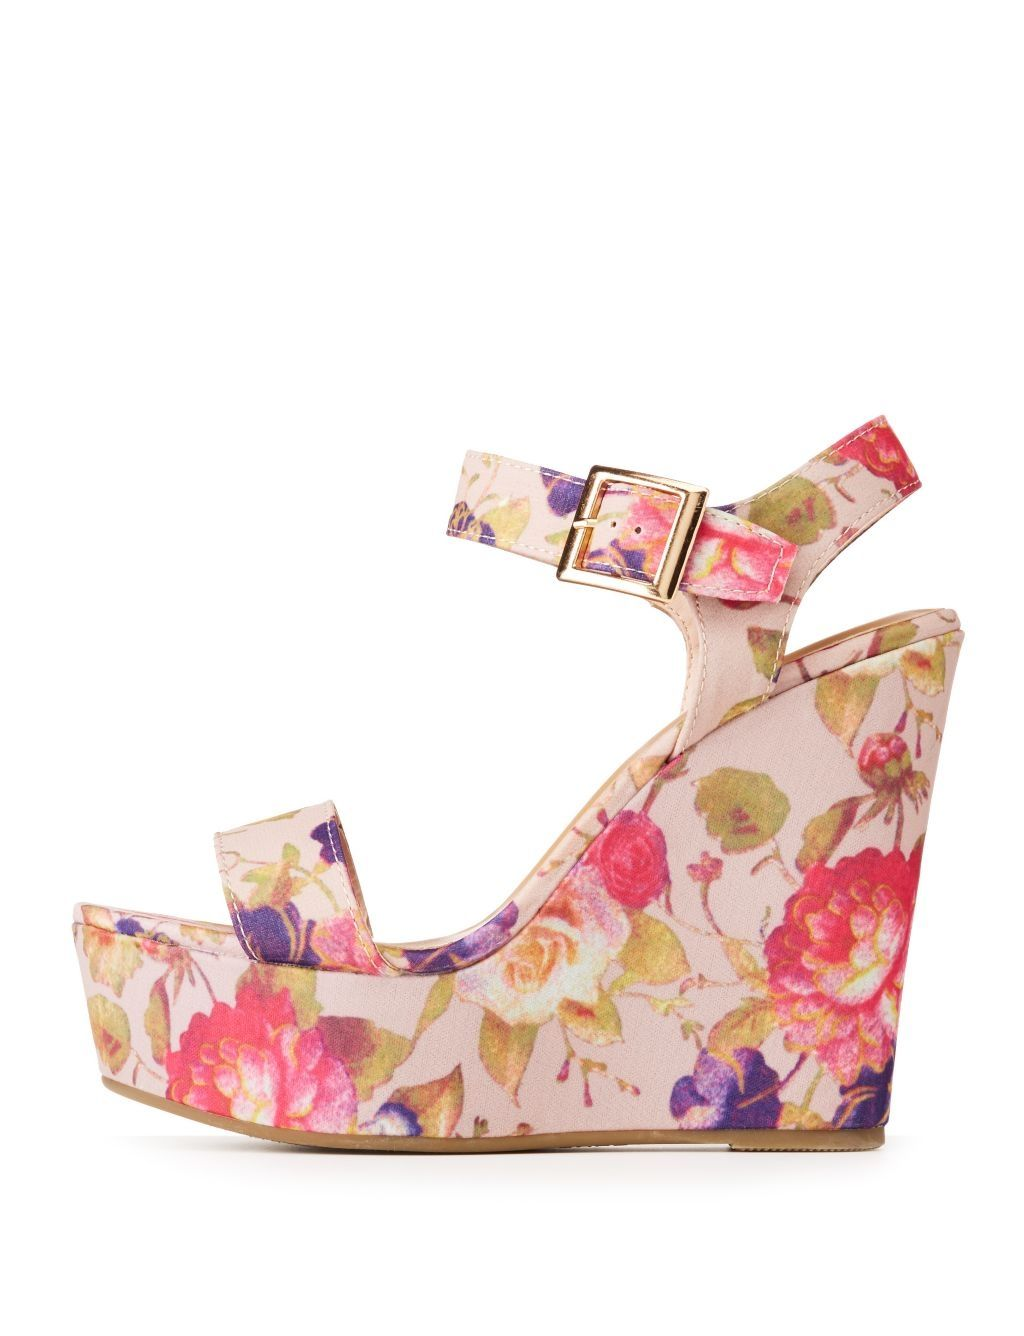 8a4dcb52aa7 Buy Charlotte Russe Bamboo Floral Wedge Sandals in Egypt